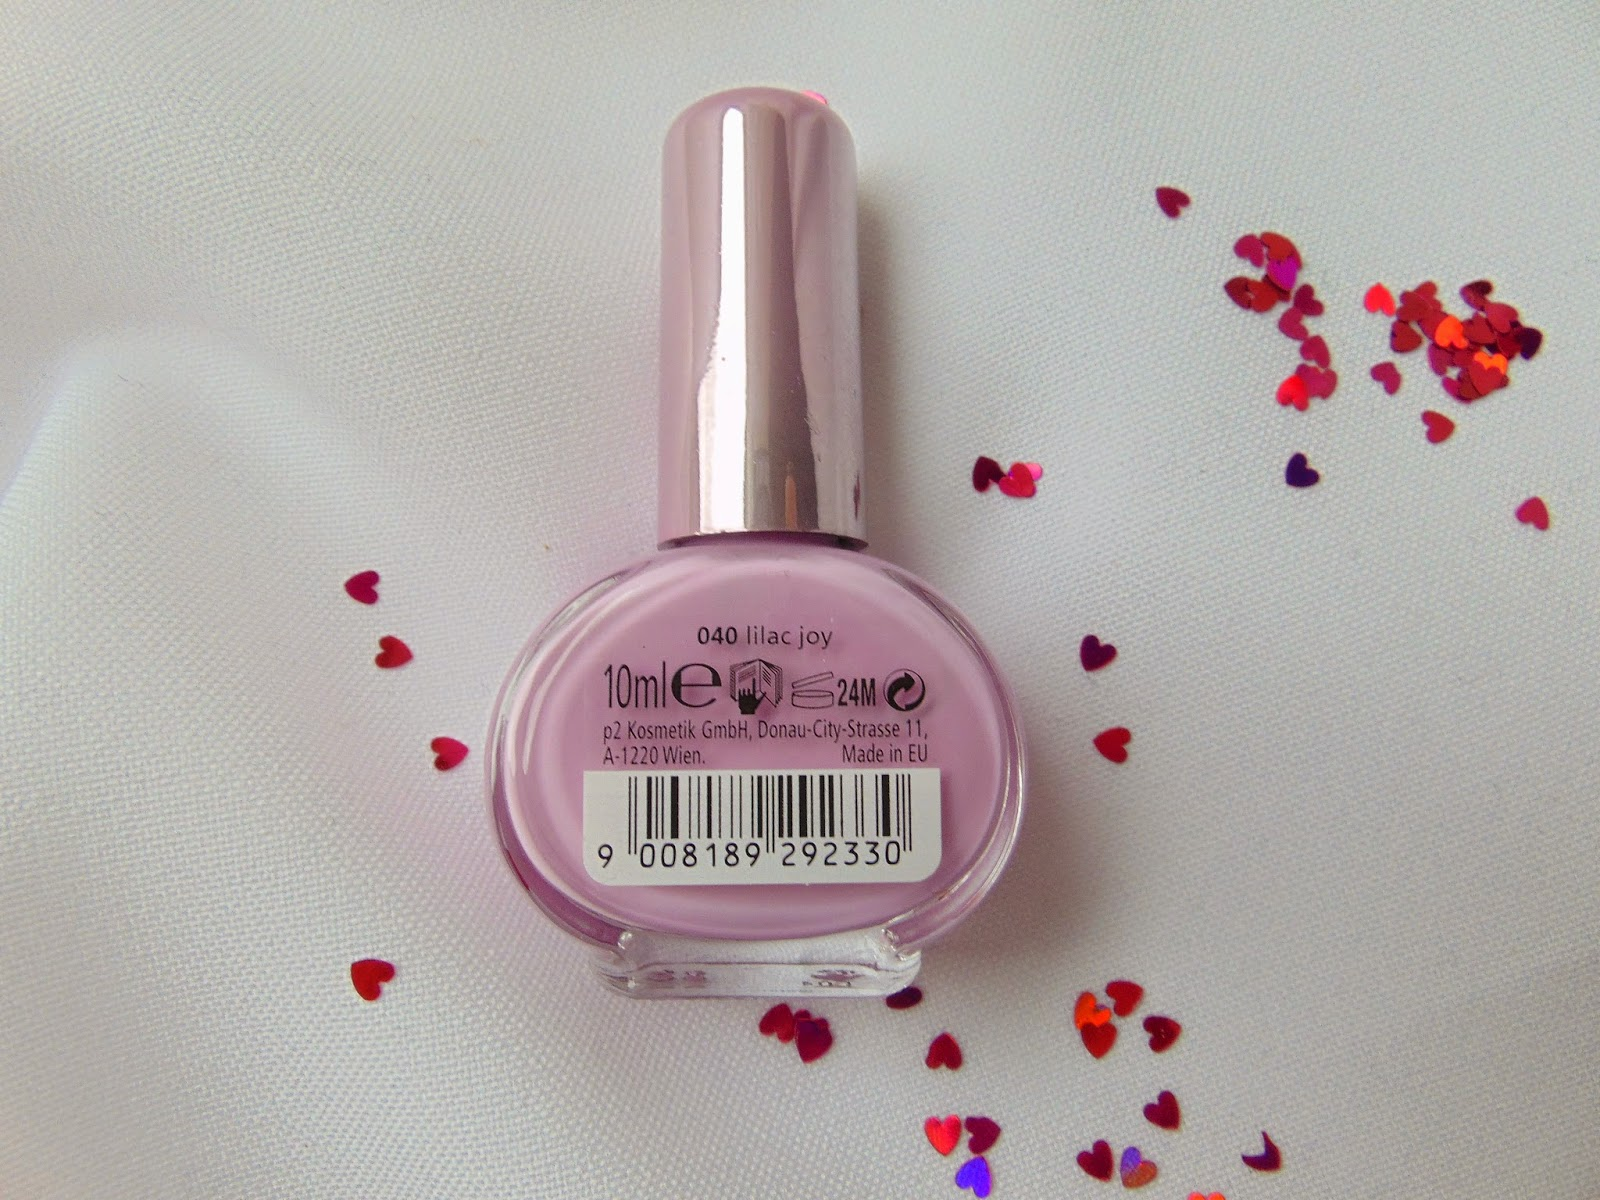 p2 Limited Edition: Just dream like - spring's fav nail polish - Lilac Joy - www.annitschkasblog.de